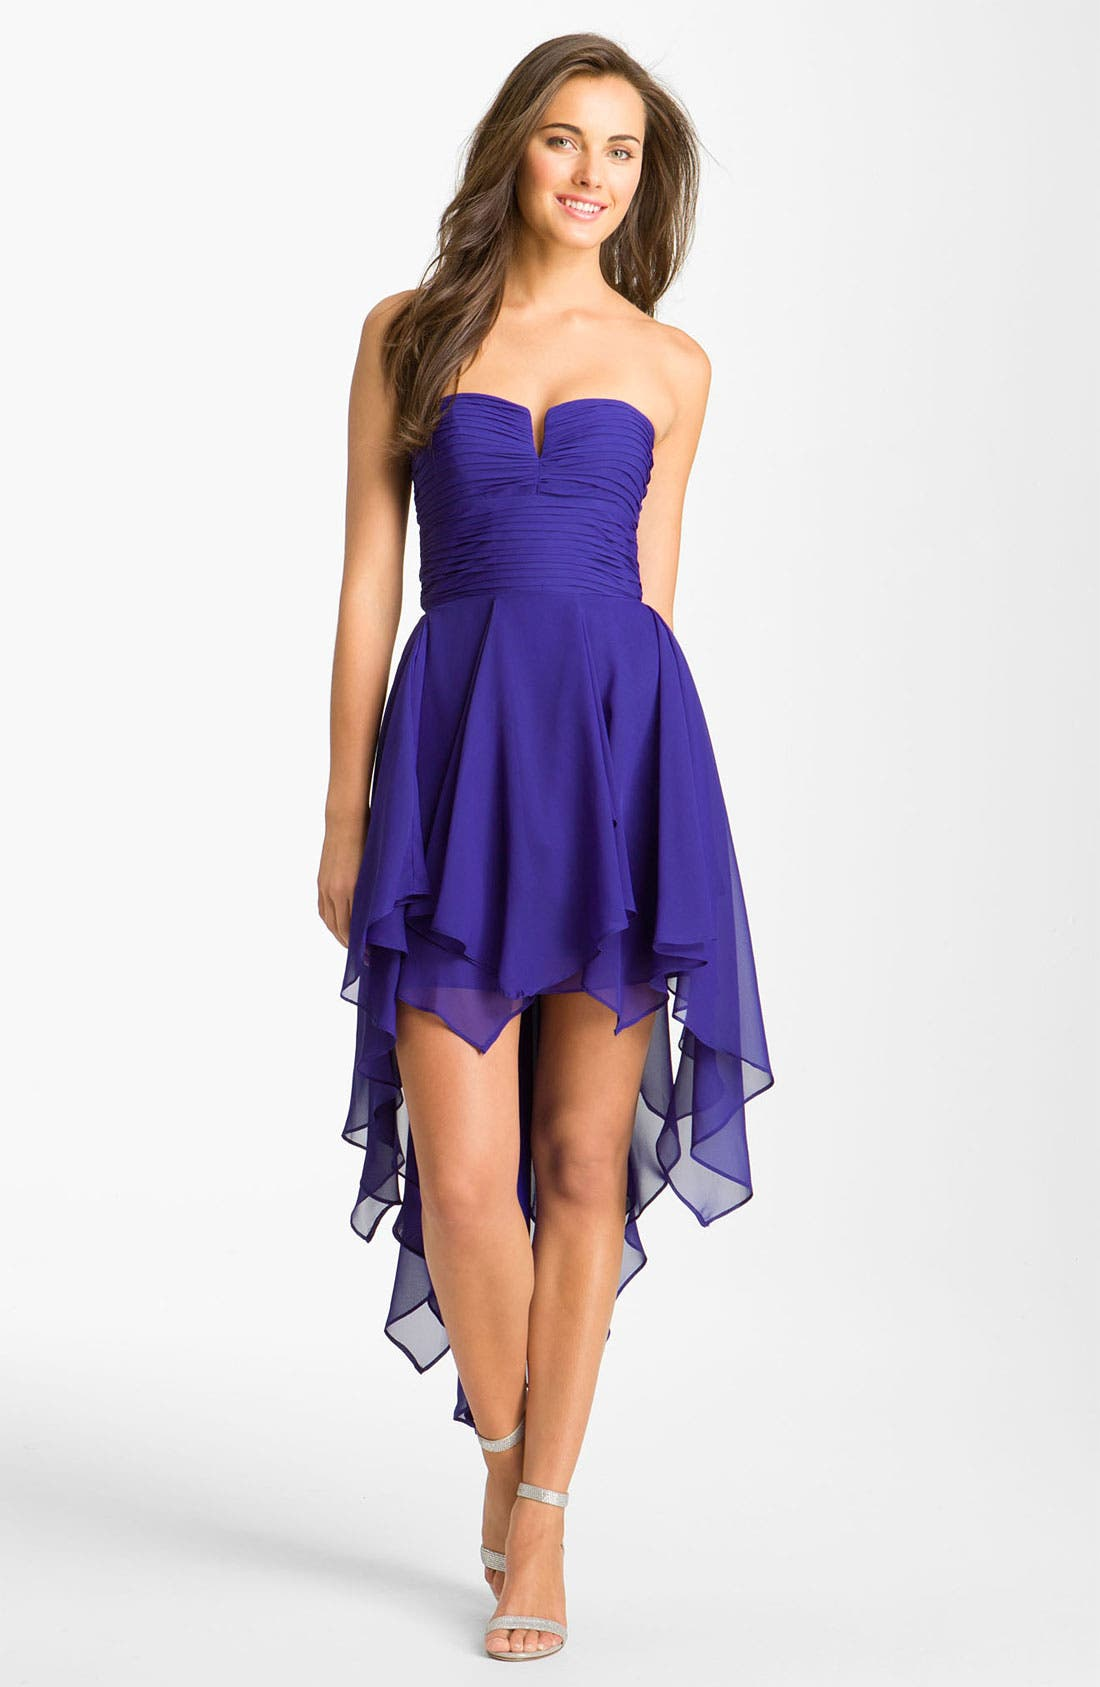 Main Image - Hailey by Adrianna Papell Notched Bodice Chiffon Dress